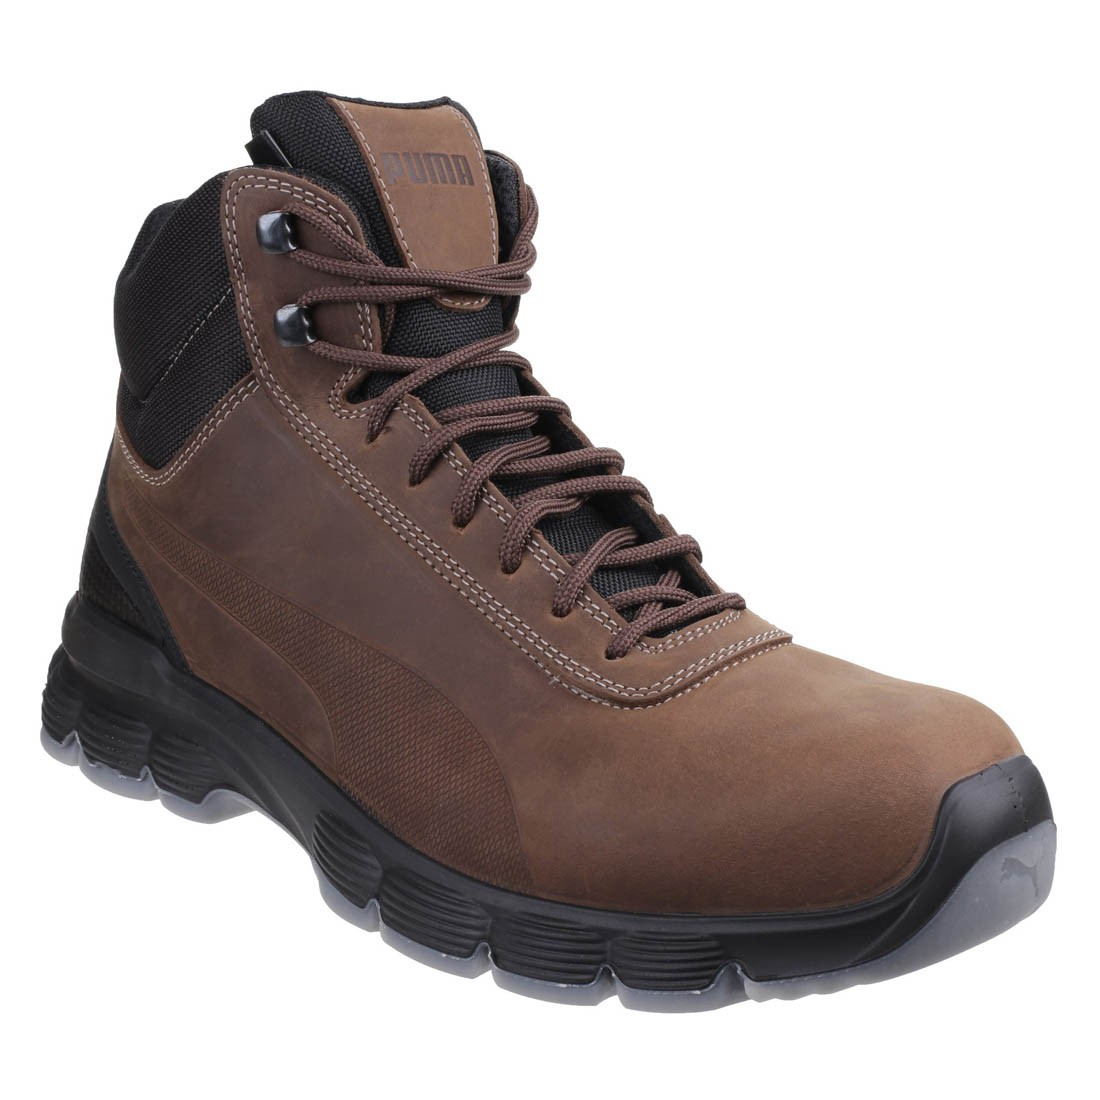 Puma Safety Condor Hikers Crazy Horse Brown Leather Mens